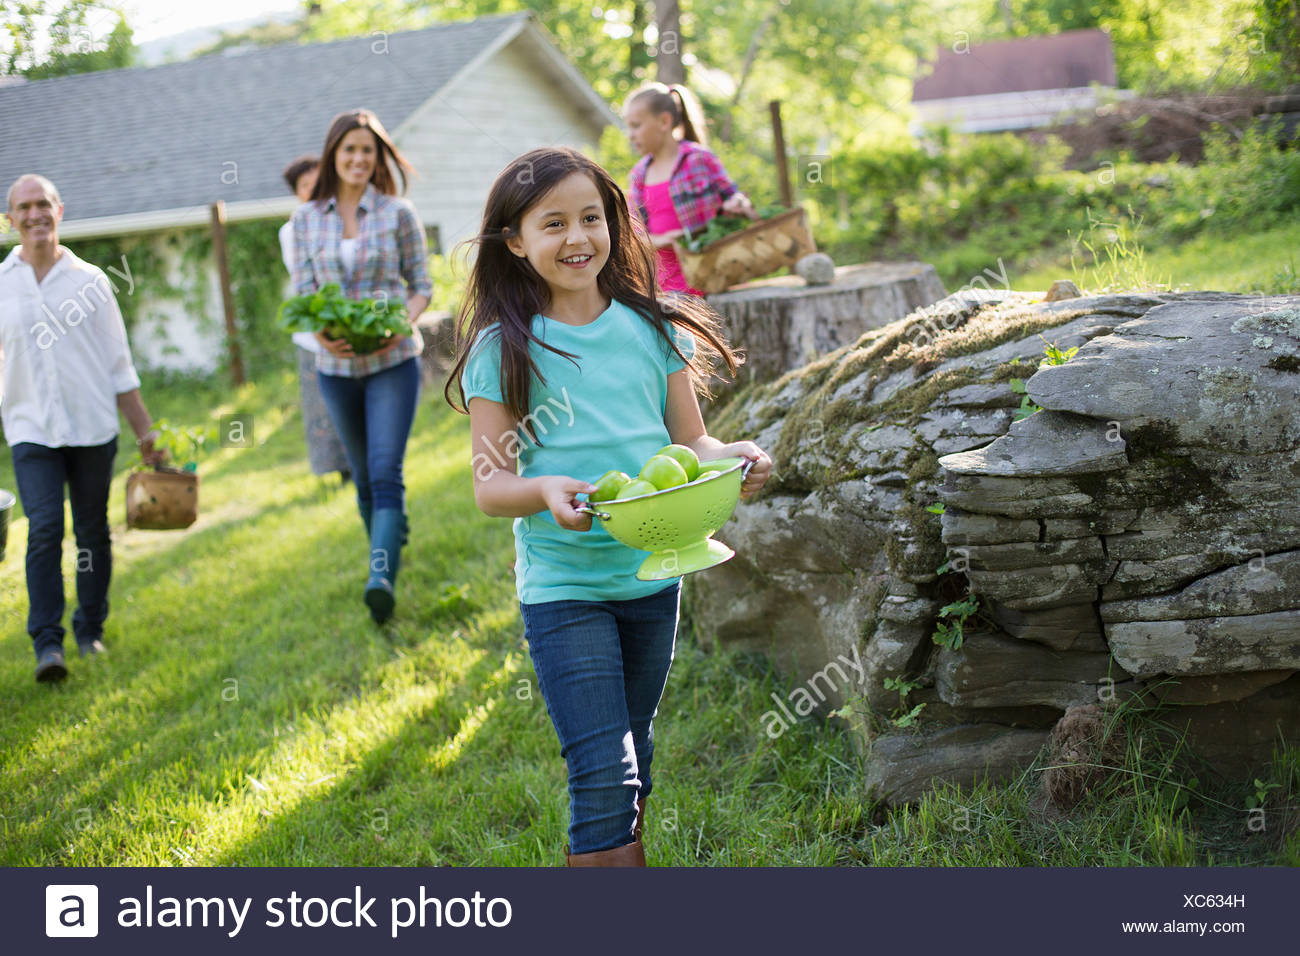 Organic farm. Summer party. A family carrying baskets and bowls of food across the grass. - Stock Image